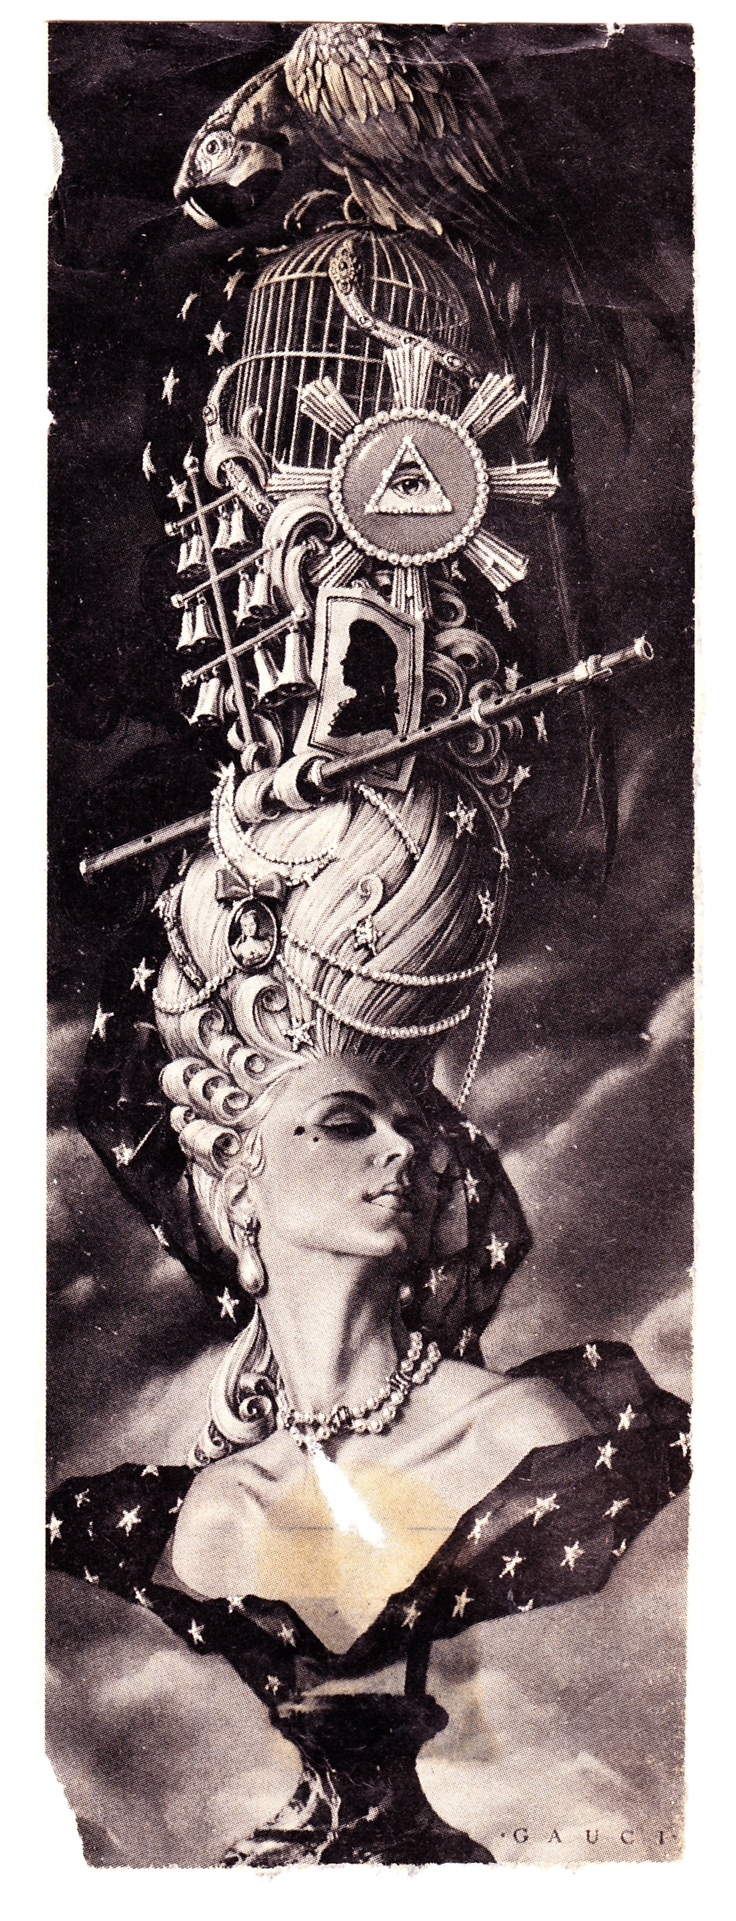 I've always loved this illustration for Mozart's Opera, The Magic Flute.  I've had this little clipping from a magazine for nearly 20 years!